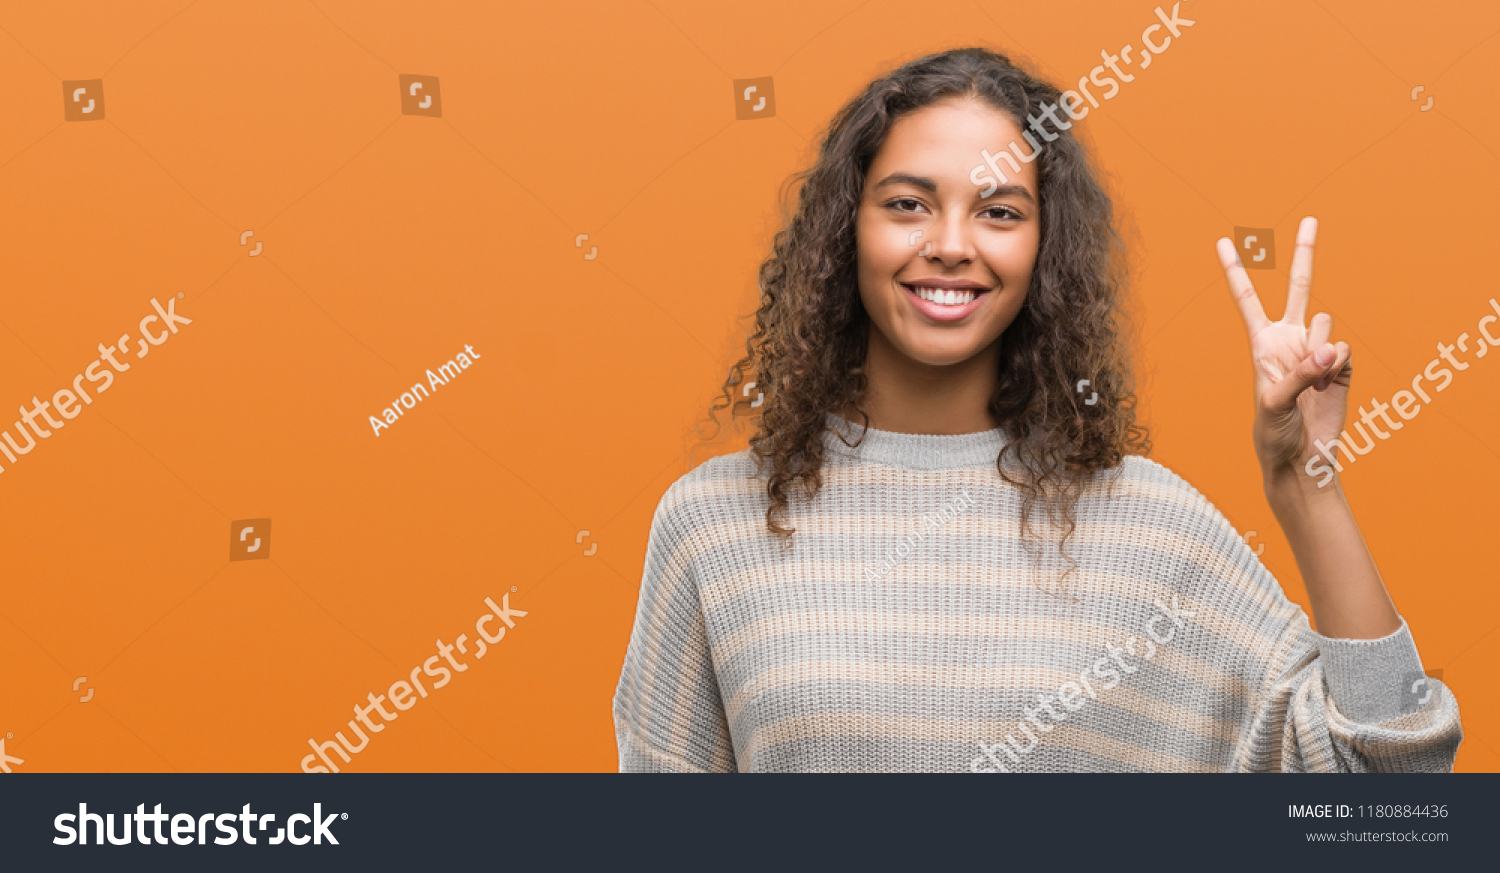 Beautiful young hispanic woman wearing stripes sweater showing and pointing up with fingers number two while smiling confident and happy. #1180884436